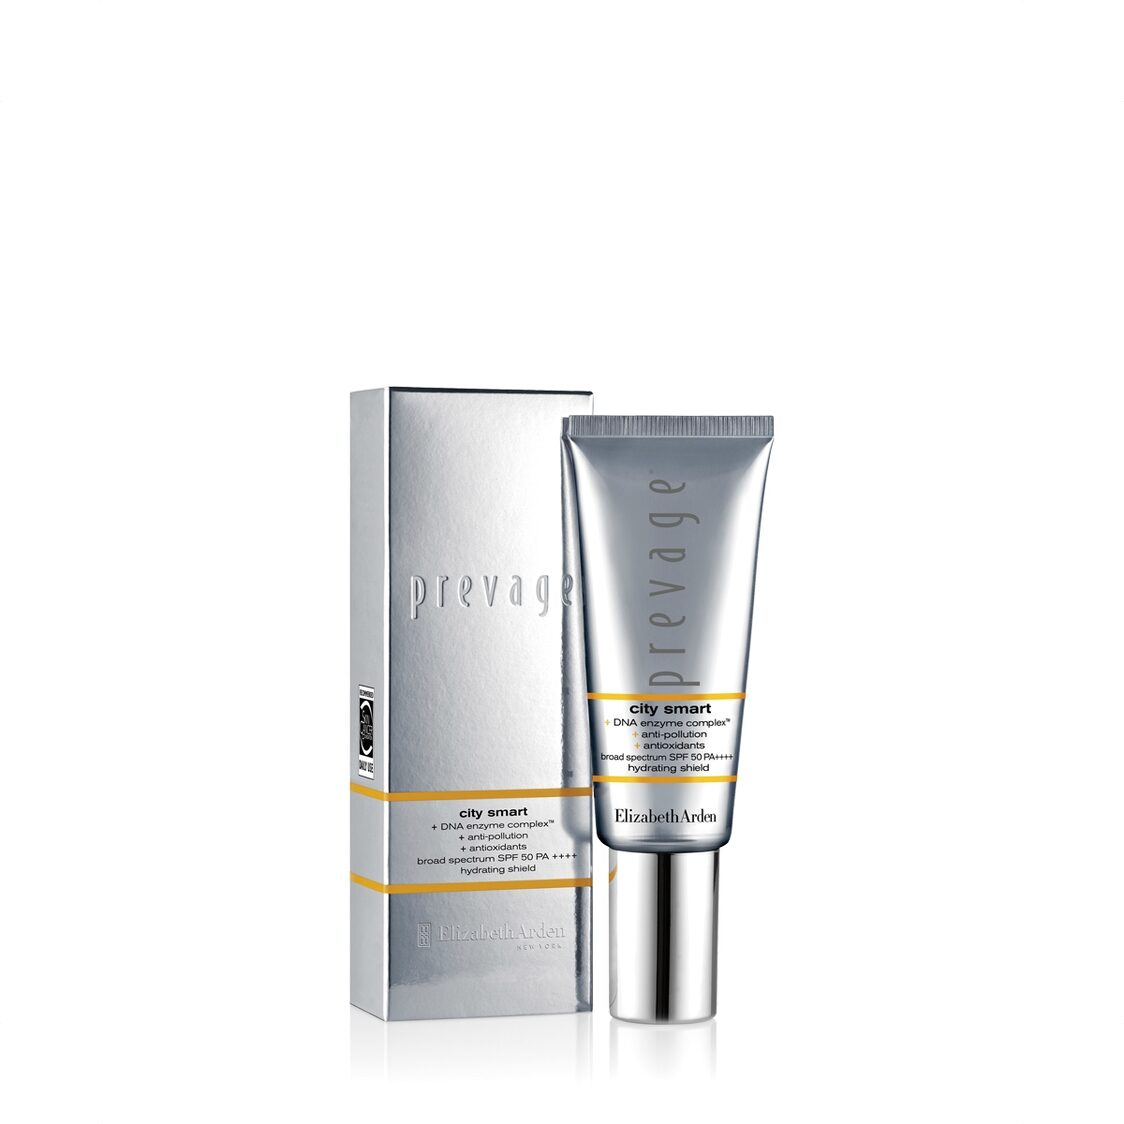 PREVAGE City Smart 40ml